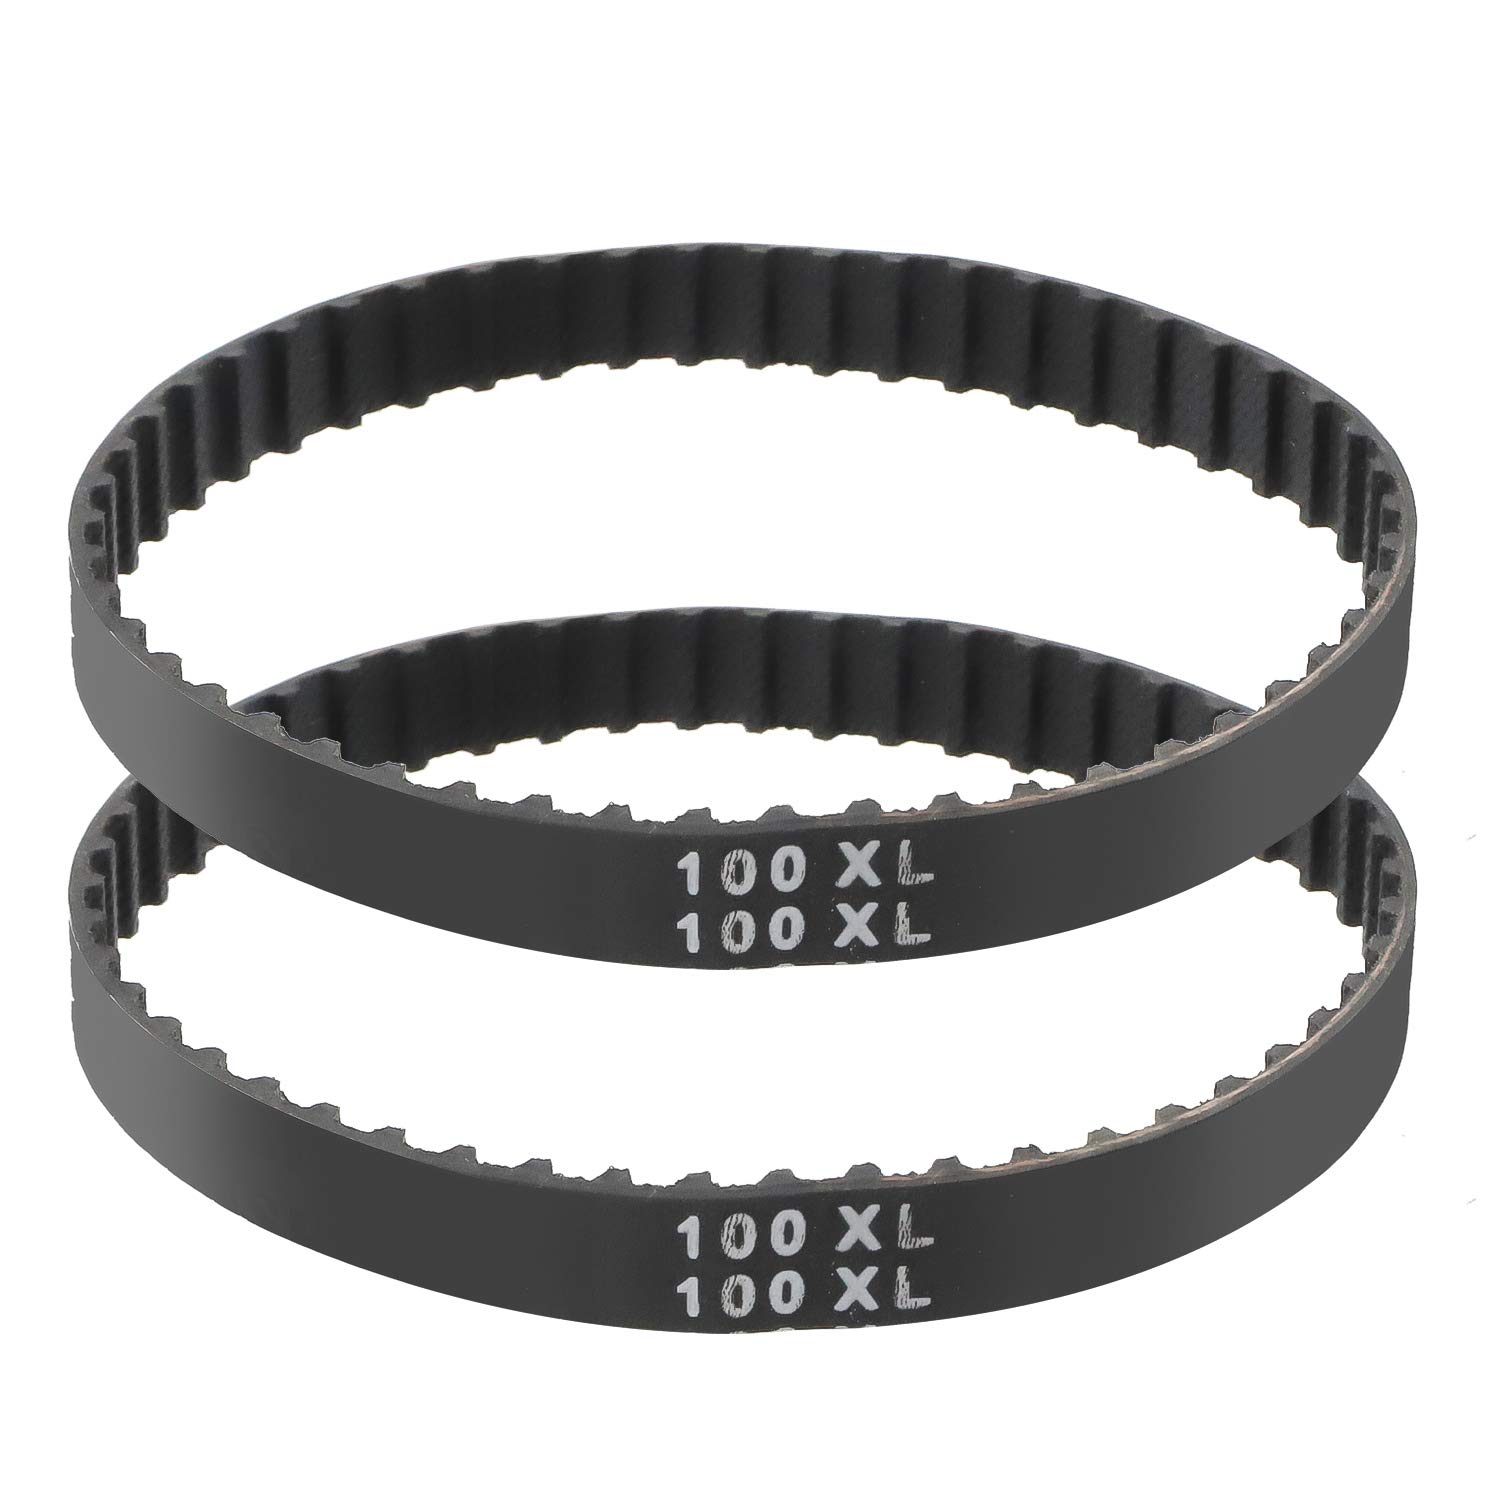 TOPPROS 100XL Series Width 3/8 inch Industrial Timing Belt,Pack of 2